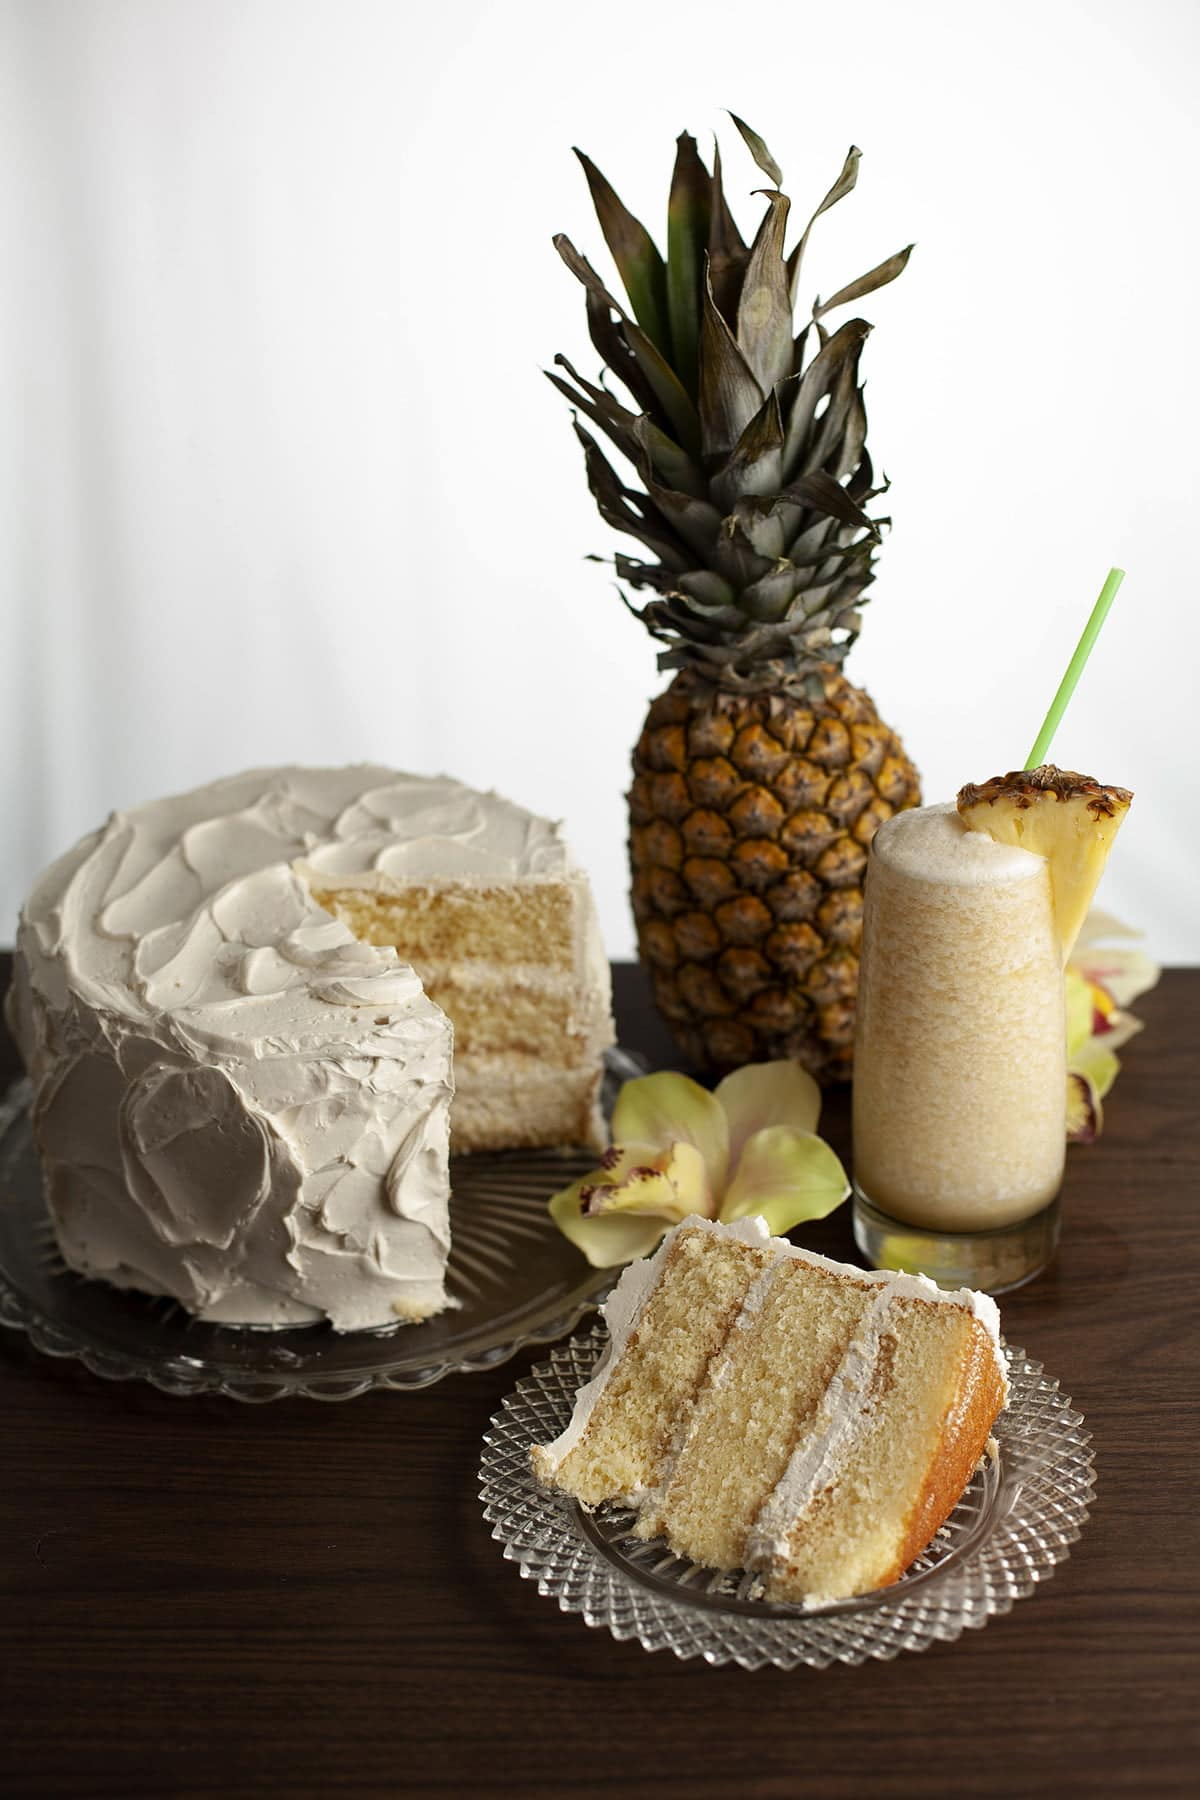 A slice of Bahama Mama torte is shown next to the cake it is cut from. 3 layers of a white cake, filled and frosted with a white frosting. A pimeapple, a yellow cymbidium orchid, and a tropical cocktail - a Bahama Mama - are shown next to and behind the cake.